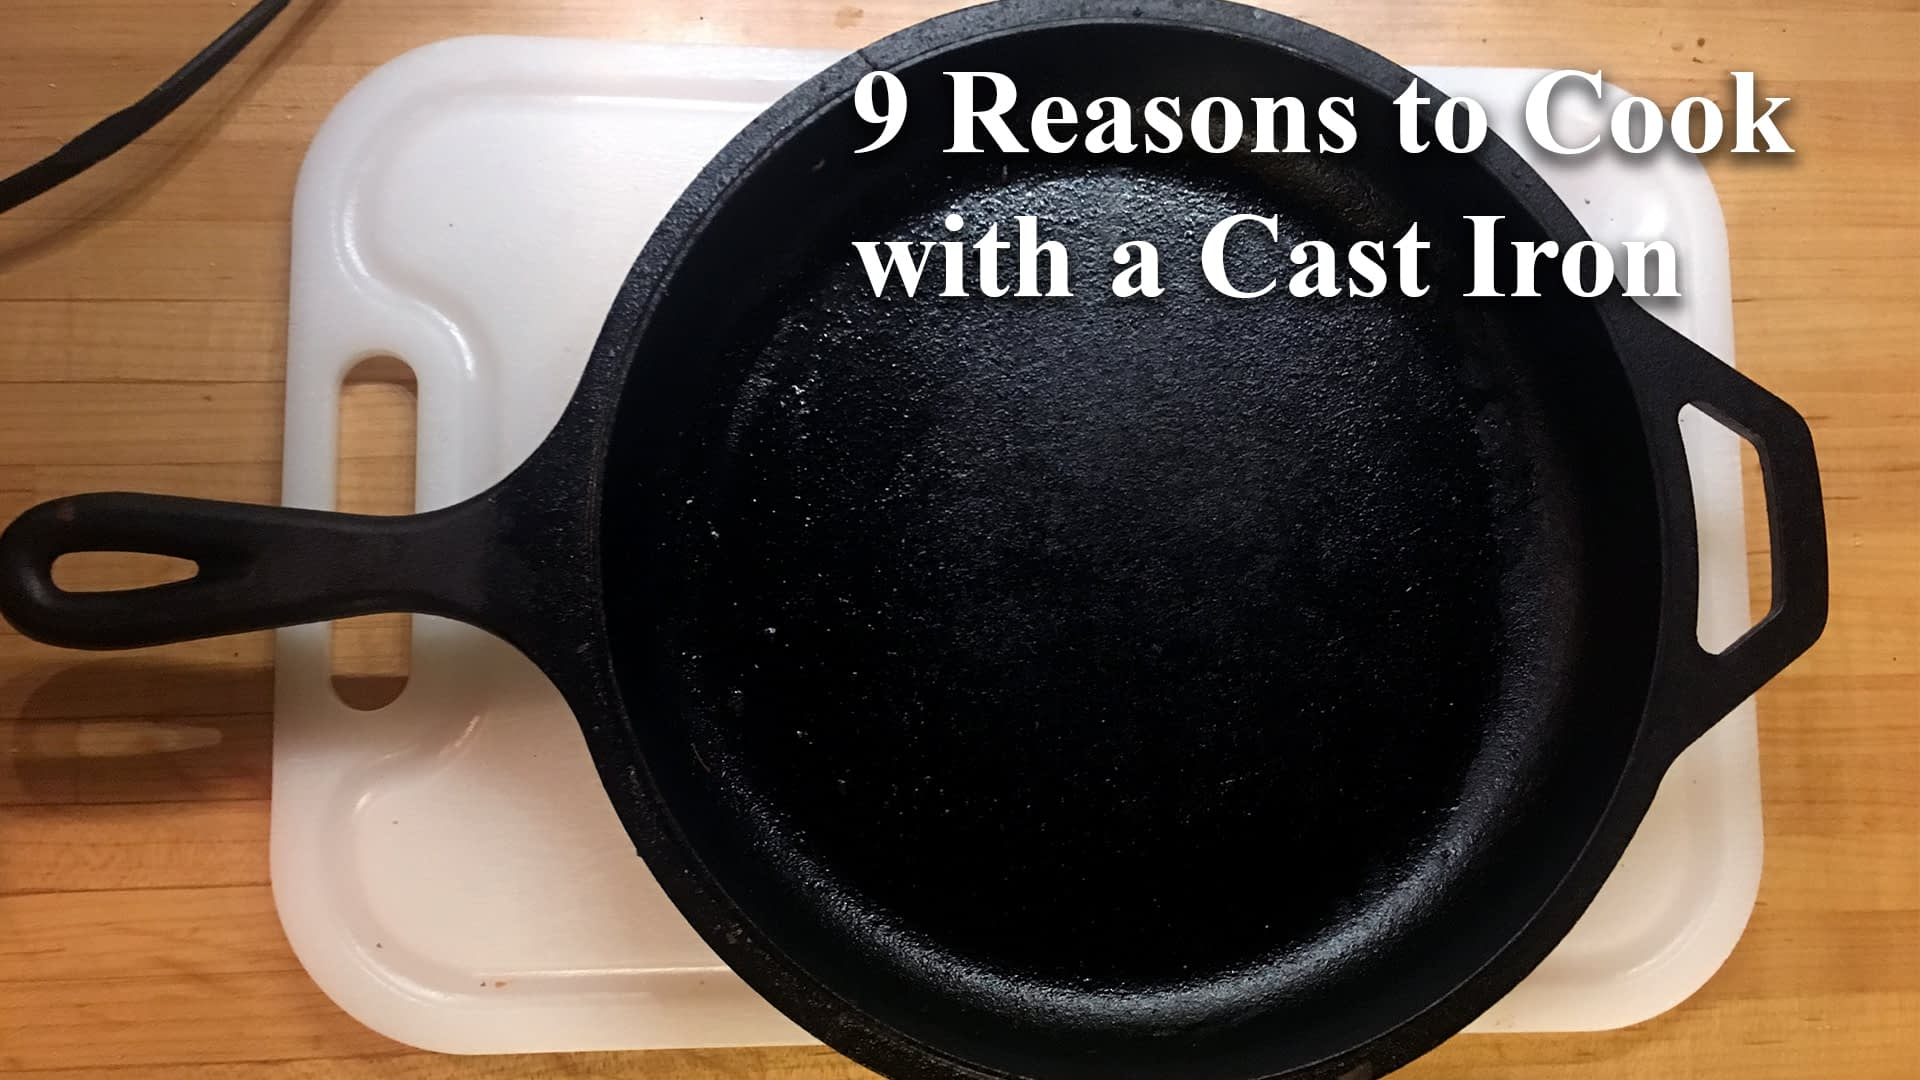 Reasons to cook with a cast iron